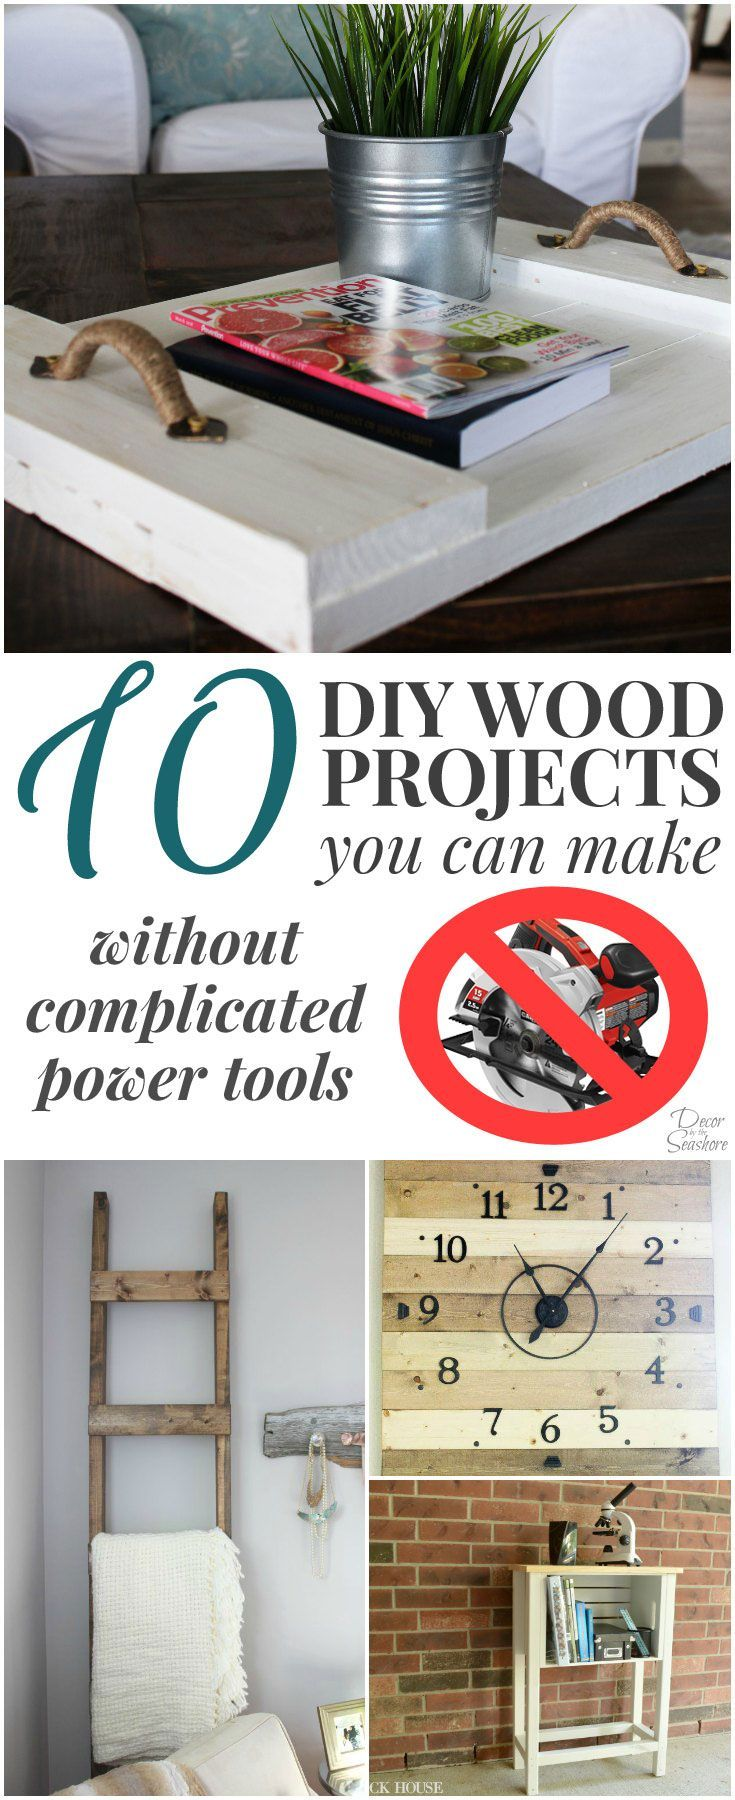 10 Diy Wood Projects You Can Make Without Complicated Power Tools